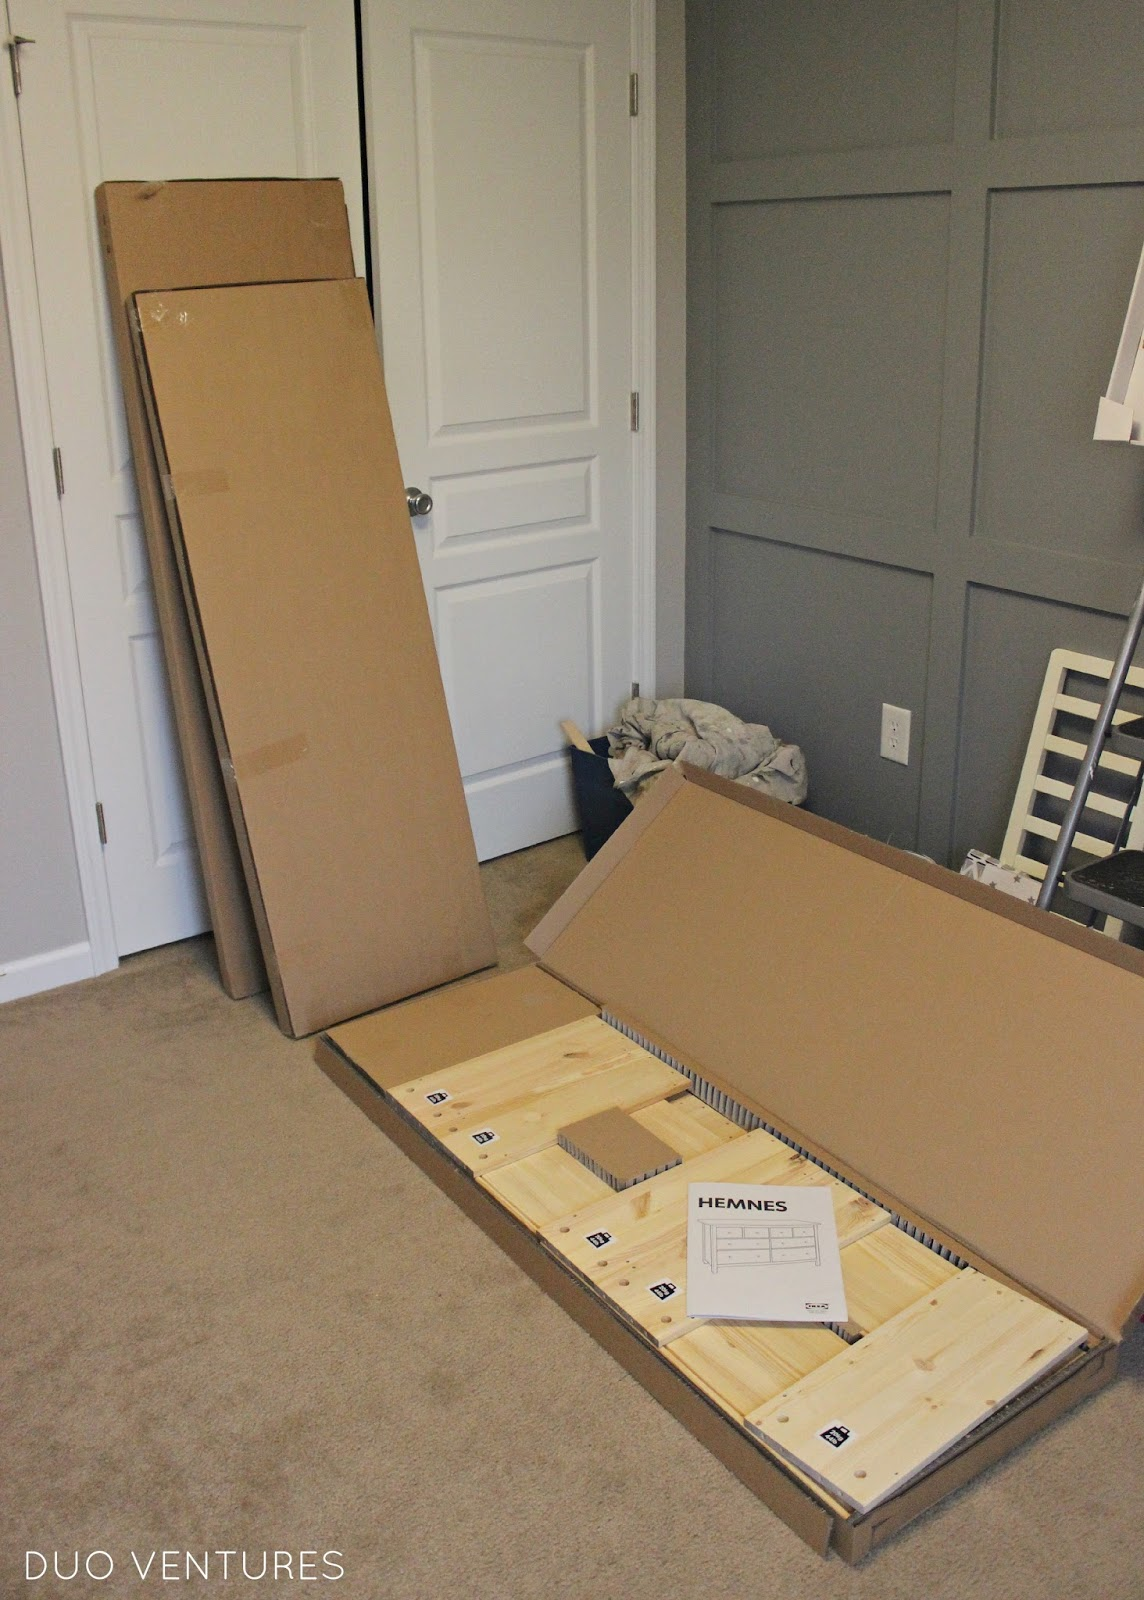 making sure you have the correct number of pieces as you go  including  the hardware   fasteners   The dresser comes in 3 separate boxes. Duo Ventures  The Nursery  Custom IKEA Hemnes Dresser